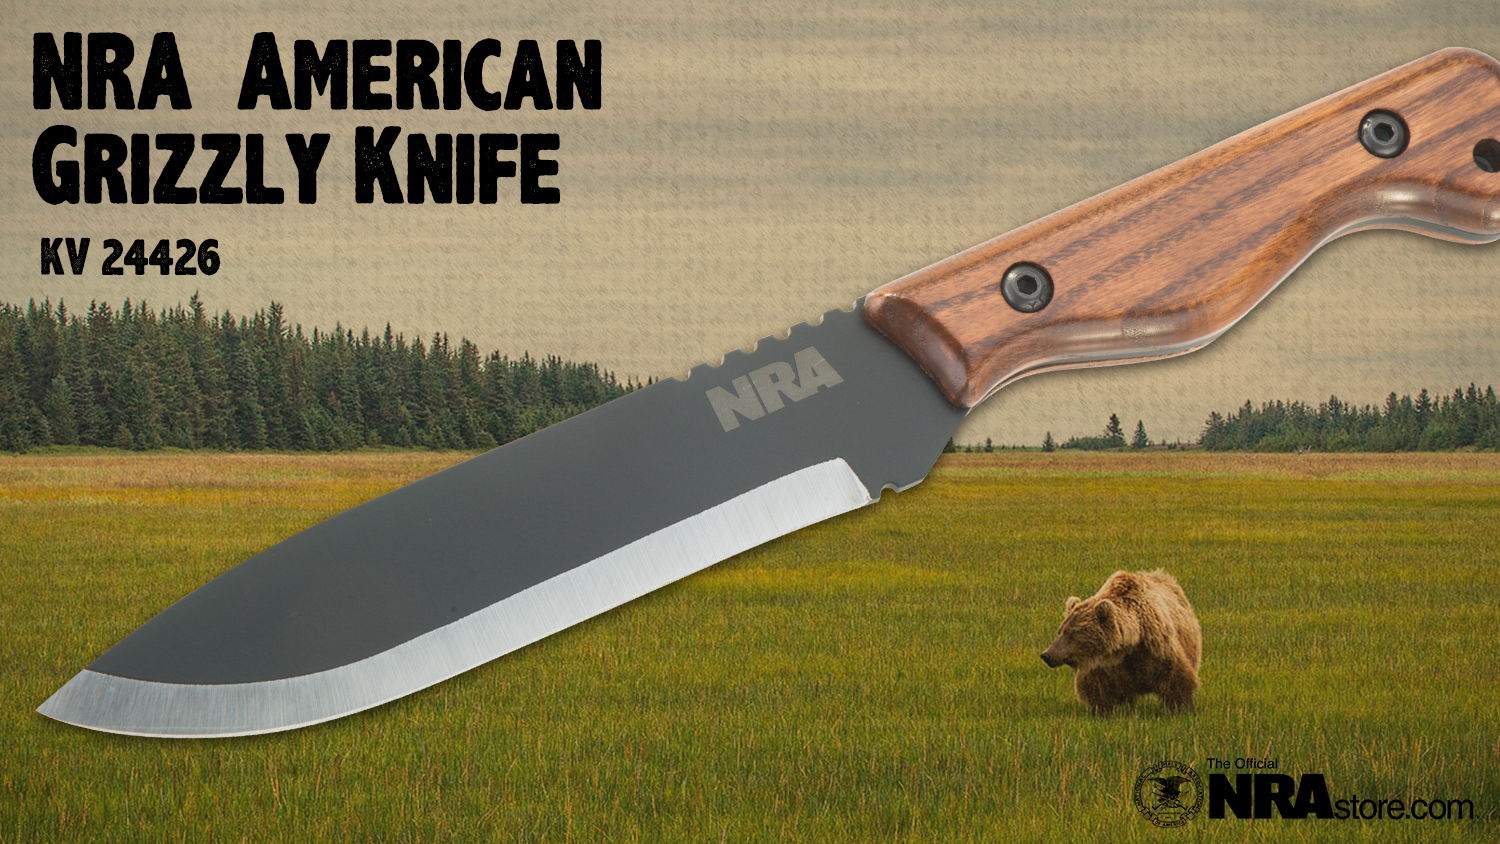 The NRAStore's American Grizzly